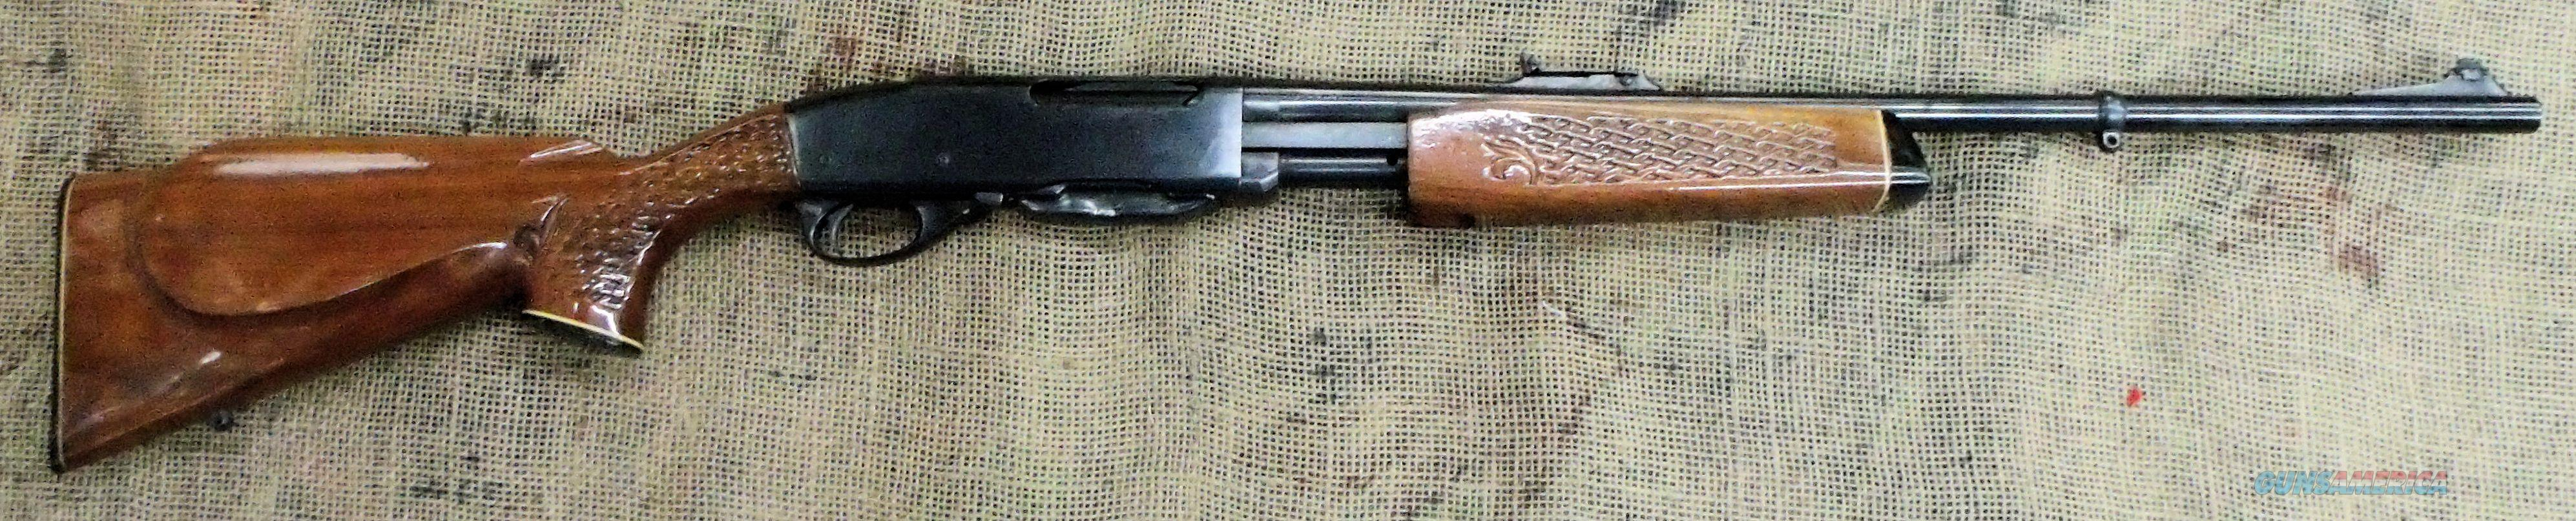 REMINGTON Mod. 760 BDL Slide-Action Rifle, 30-06  Guns > Rifles > Remington Rifles - Modern > Other